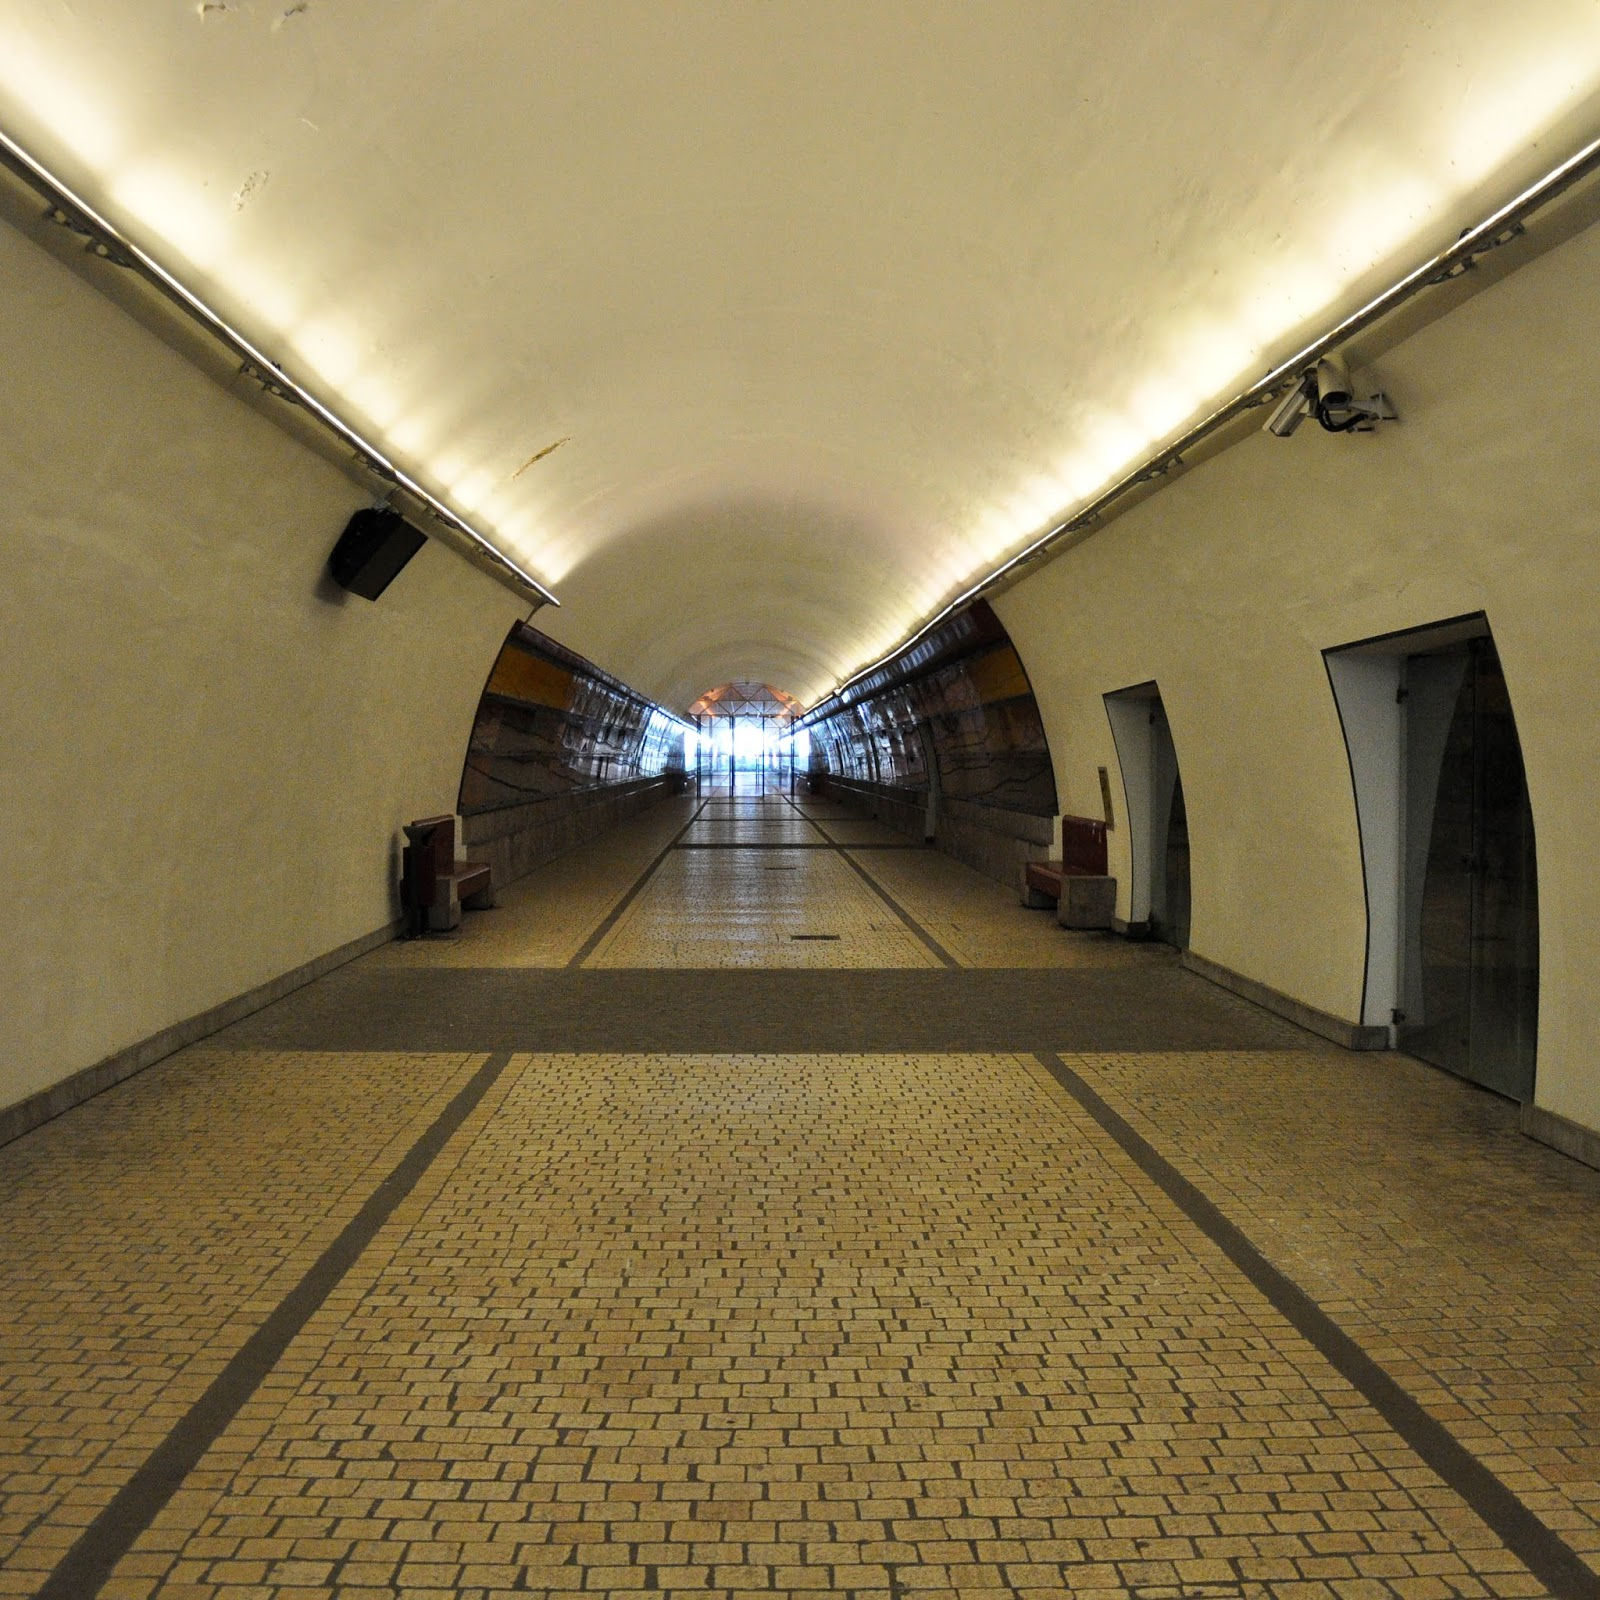 The tunnel running under the old city, Feltre, Veneto, Italy